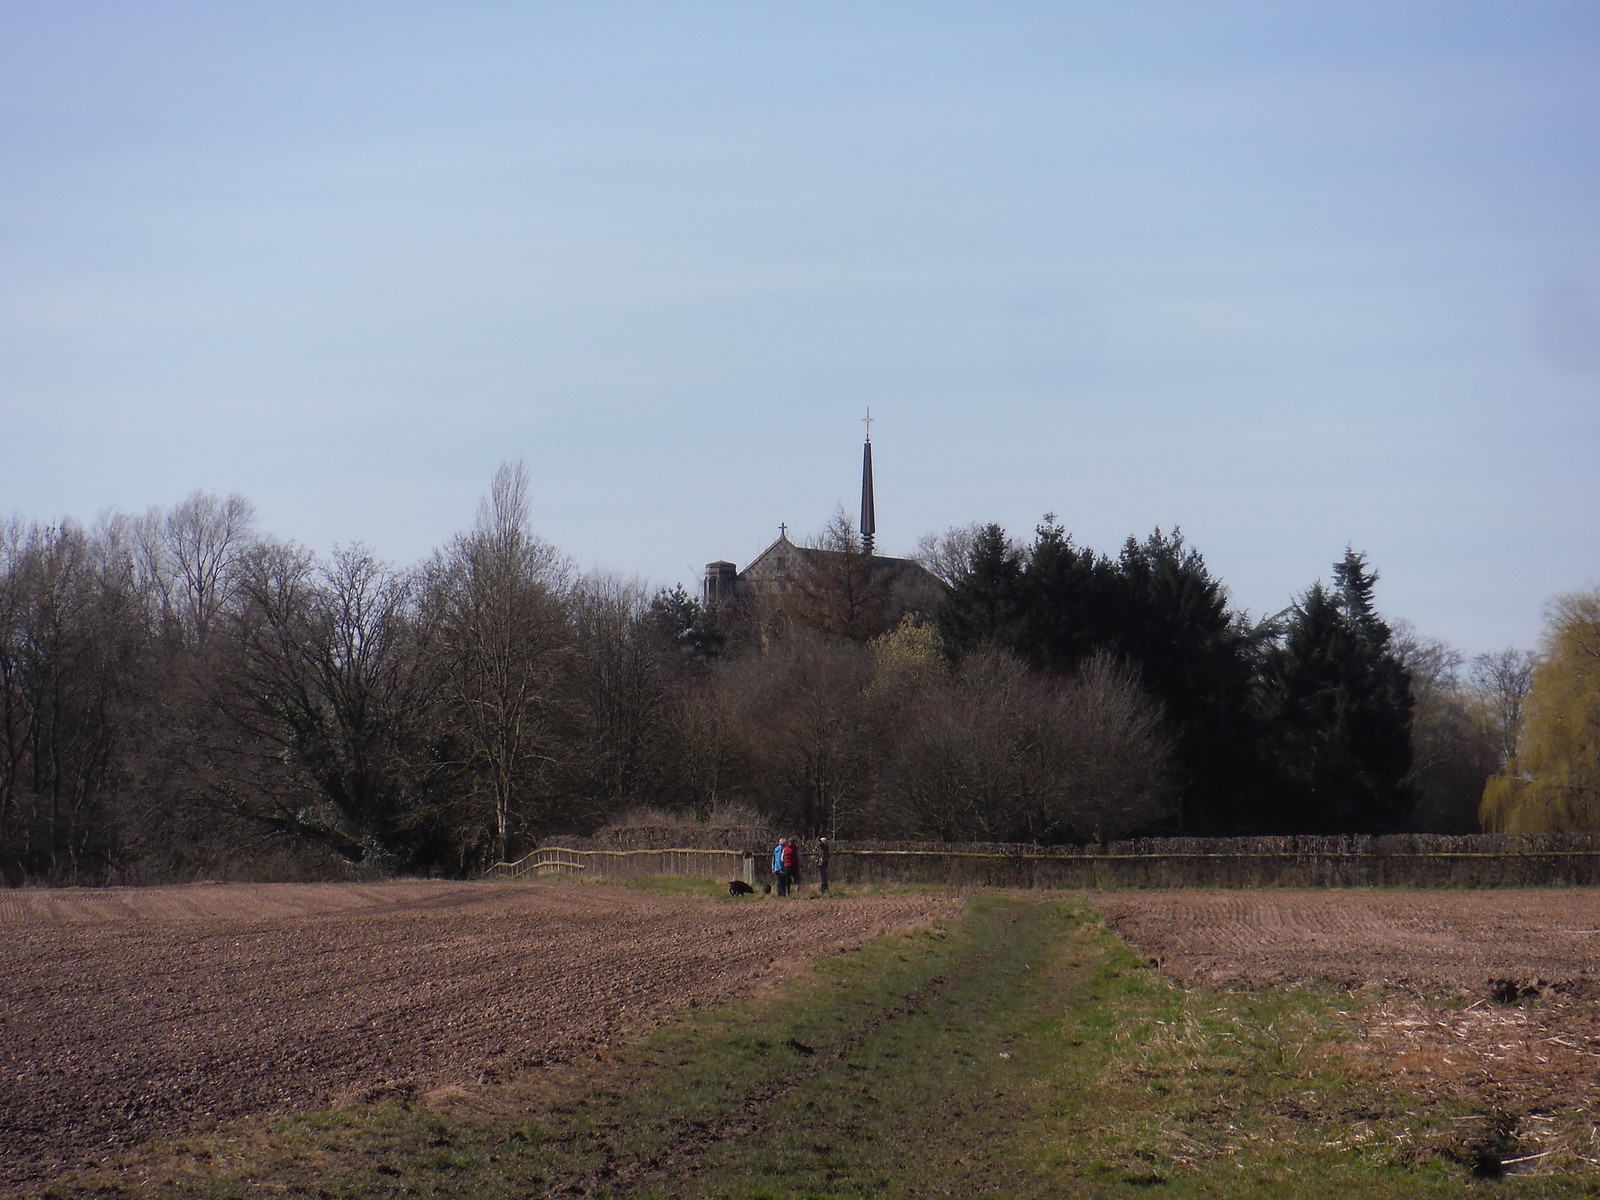 Top of Douai Abbey, from walk route SWC Walk 260 Aldermaston to Woolhampton [Midgham Station] (via Frilsham)